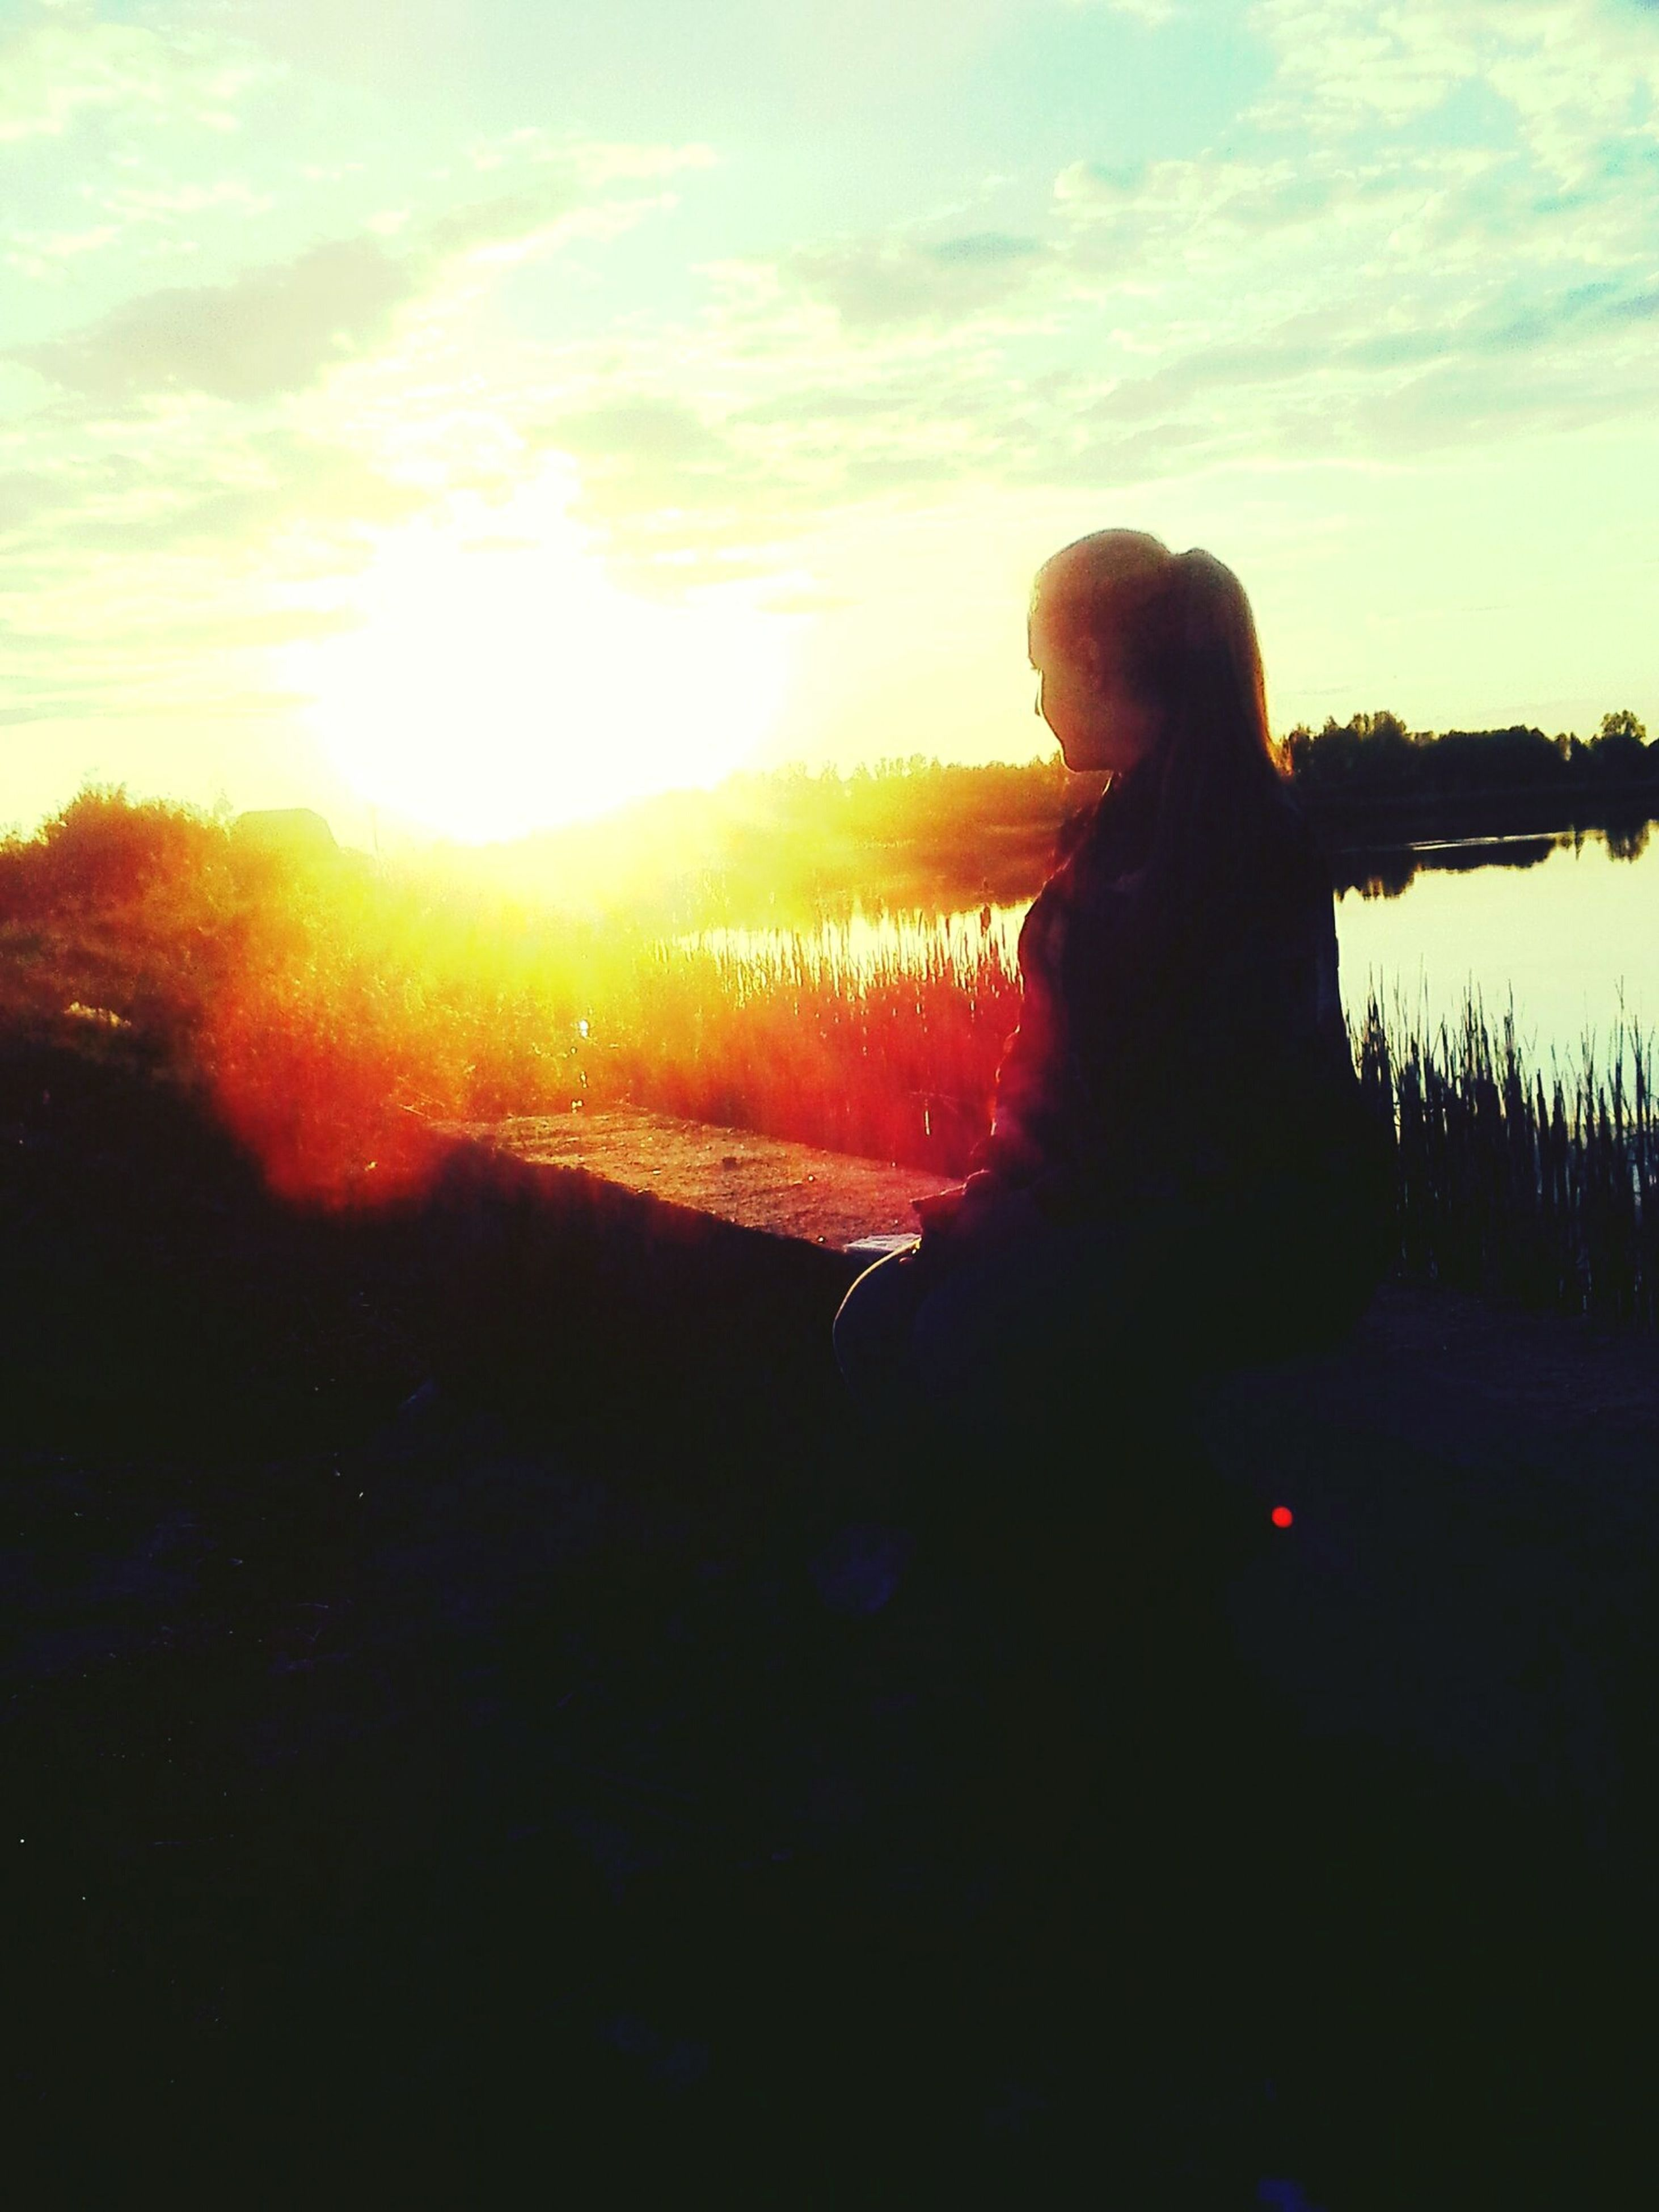 sunset, silhouette, lifestyles, leisure activity, sky, sun, water, standing, rear view, sunlight, person, three quarter length, sitting, cloud - sky, nature, waist up, tranquil scene, tranquility